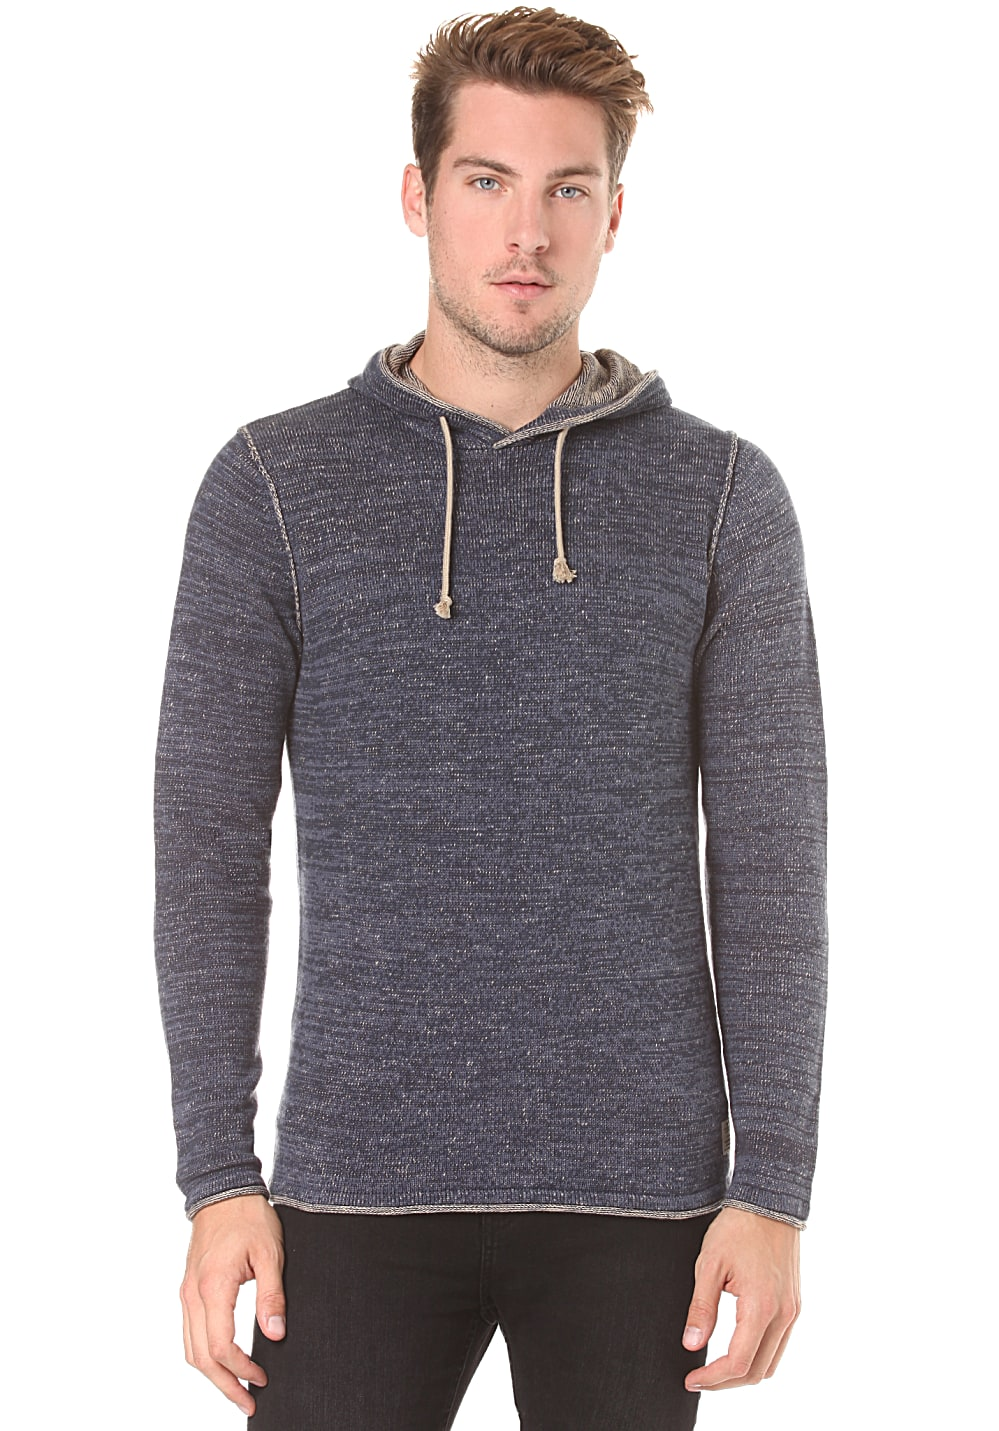 Jack & Jones Vintage Clothing Killarny - Strickpullover für Herren Blau Sale Angebote Welzow